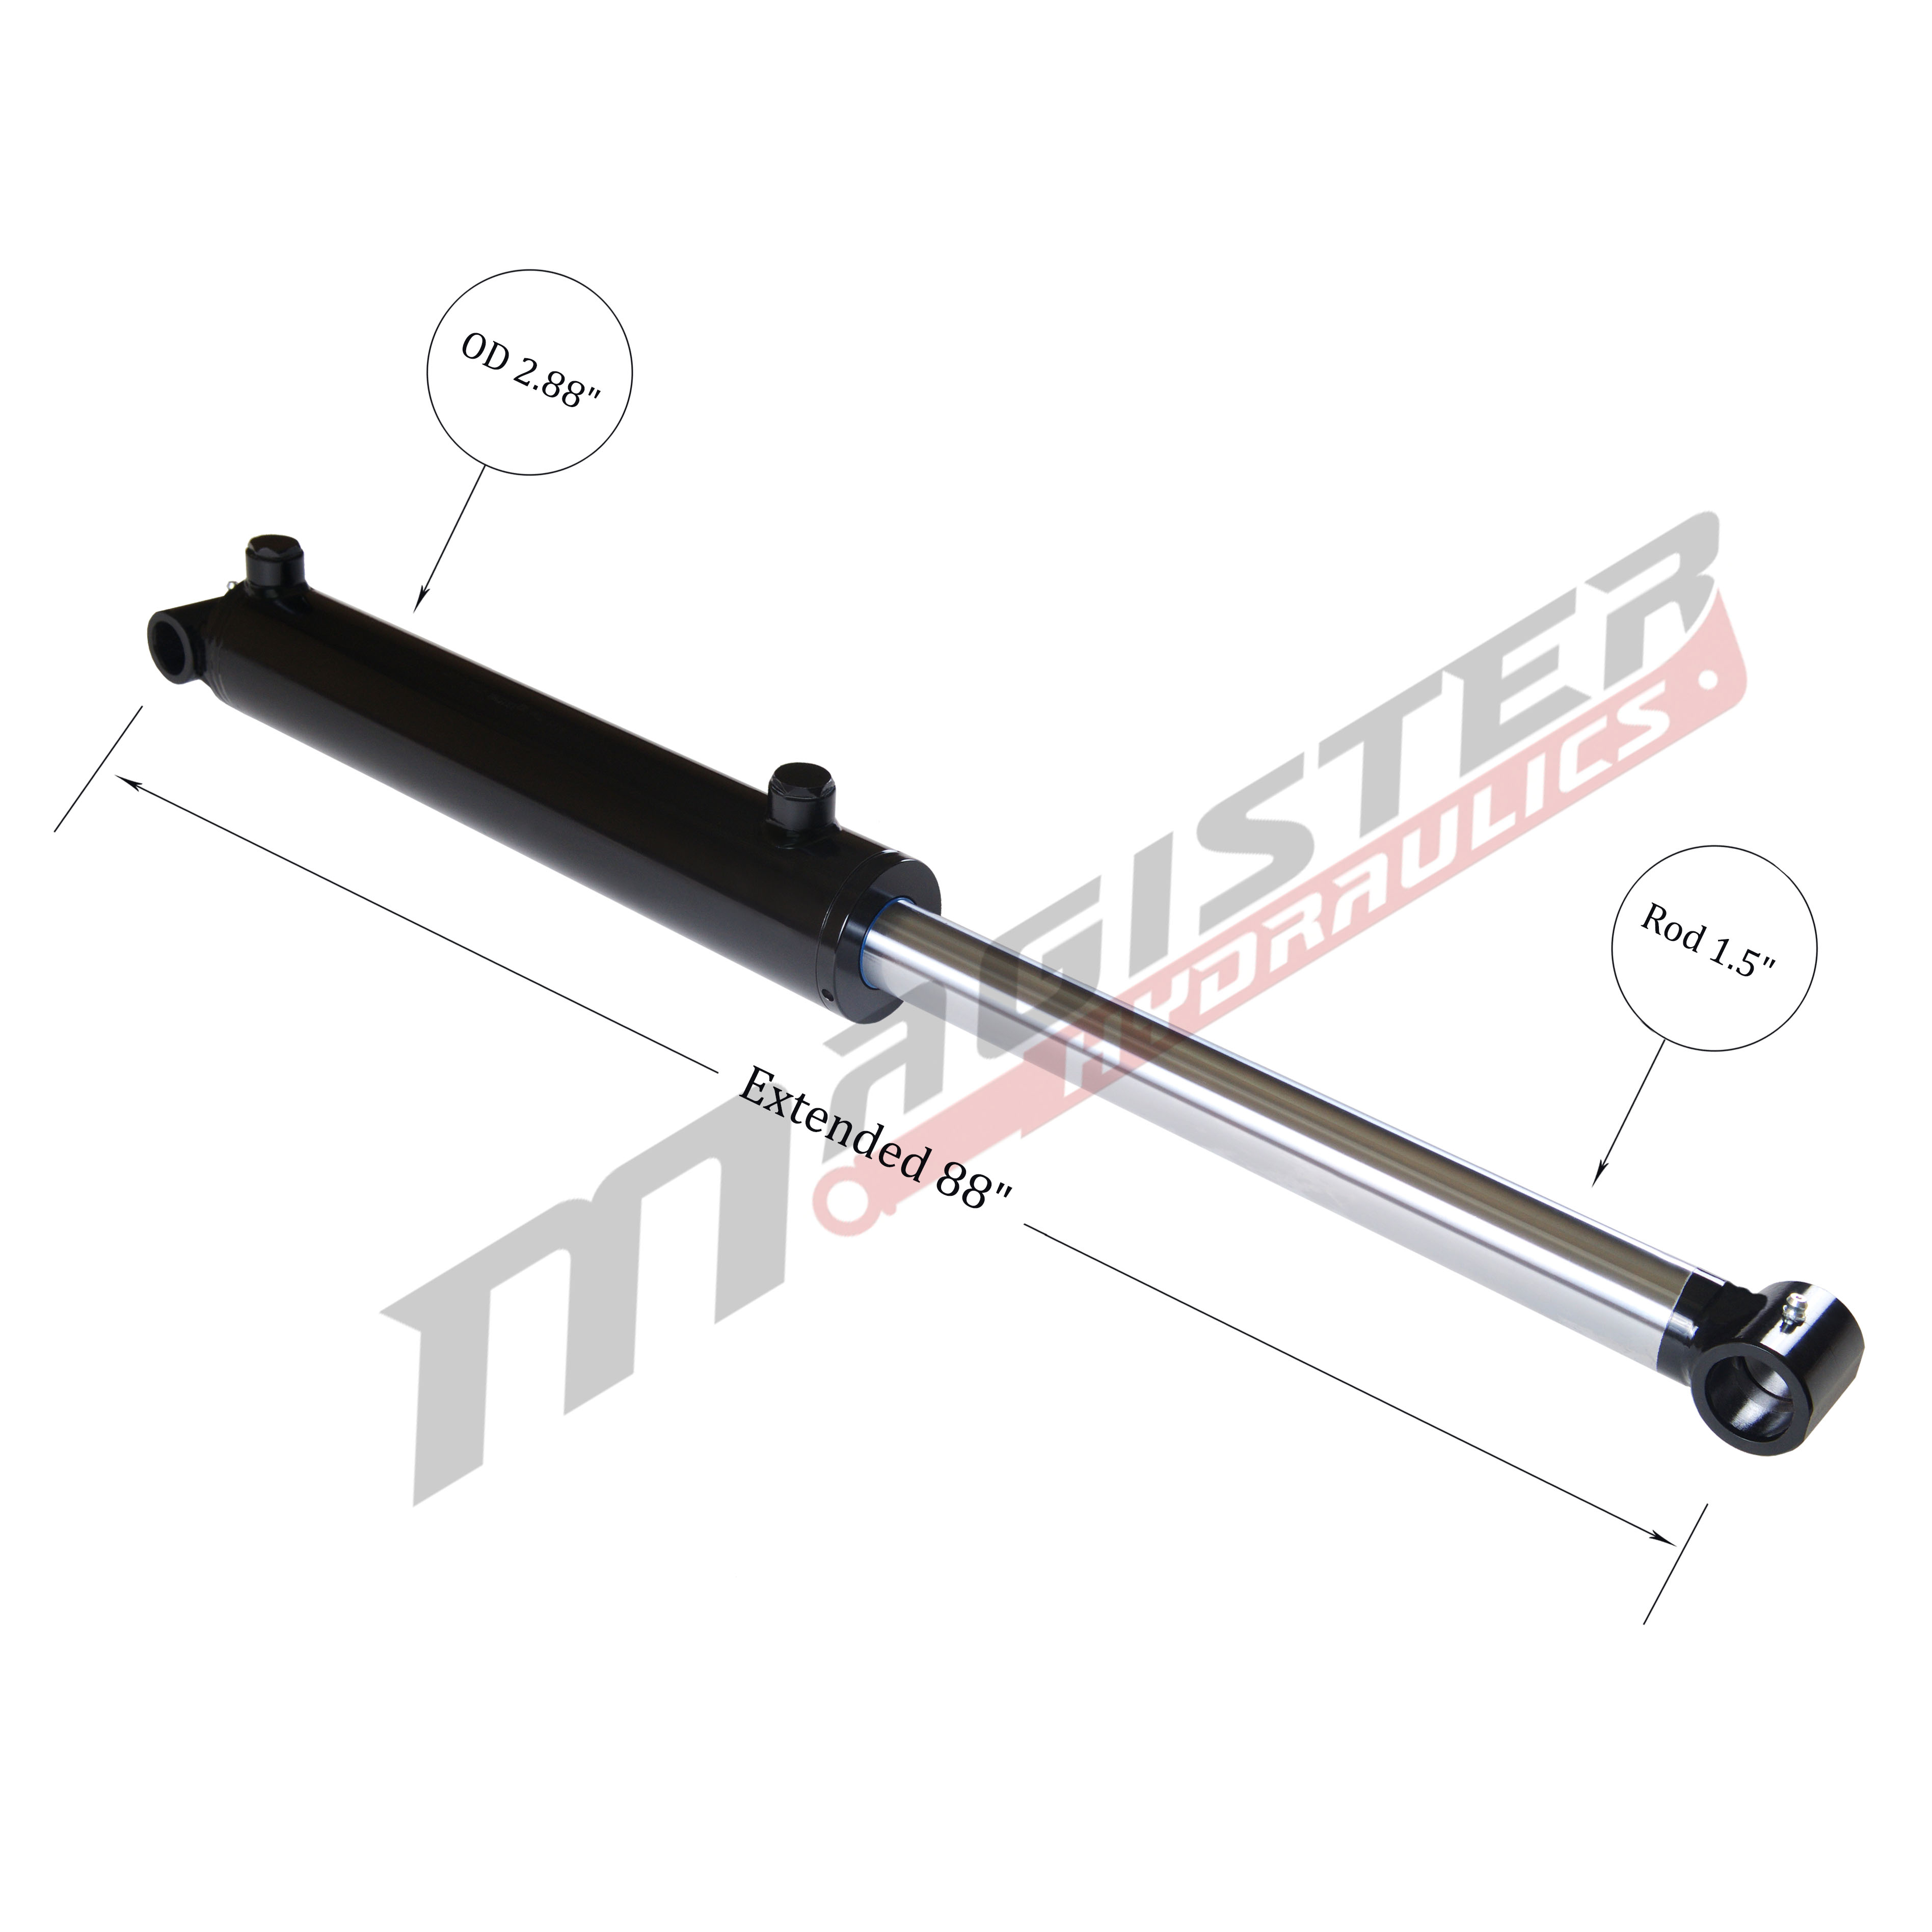 2.5 bore x 40 stroke hydraulic cylinder, welded cross tube double acting cylinder | Magister Hydraulics